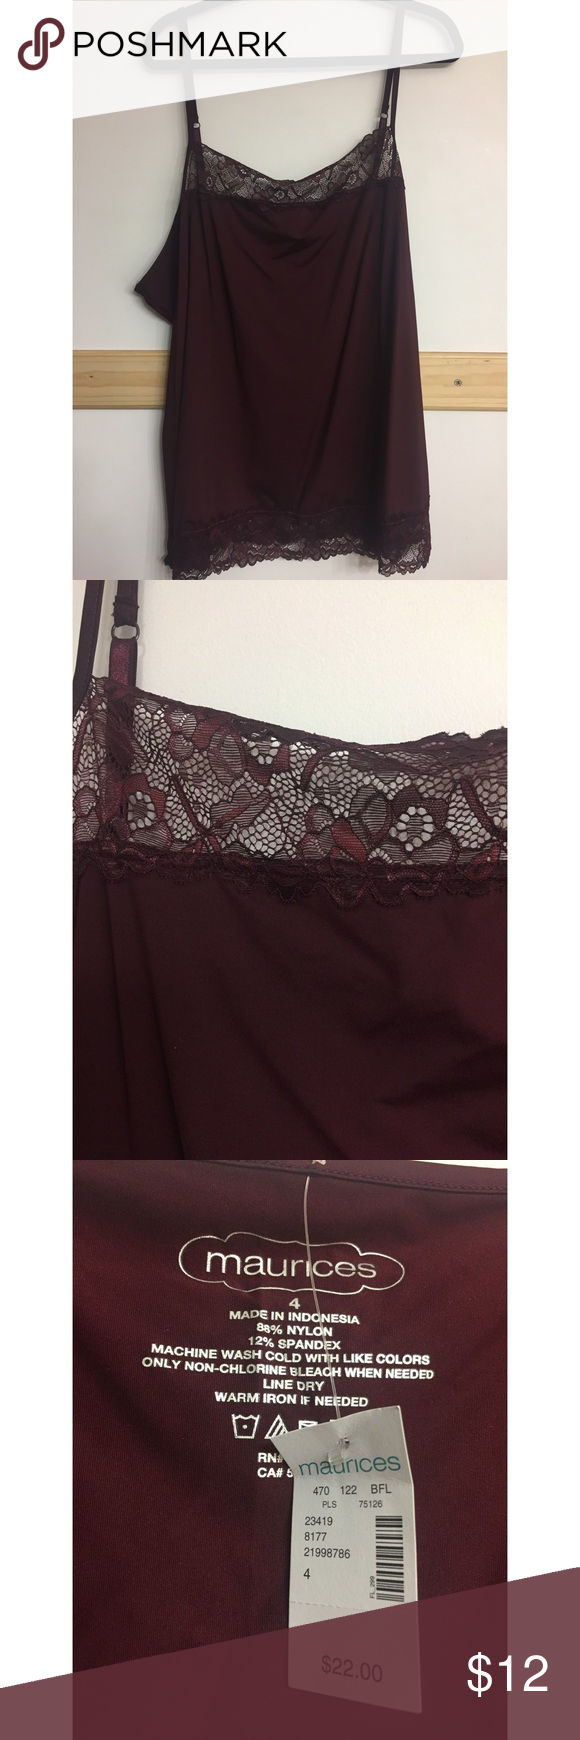 Plus size lace trim cami Beautiful lace trim cami in the color mulberry. BRAND NEW, with tags. Perfect paired with a cardigan. Has adjustable straps. Maurices Tops Camisoles